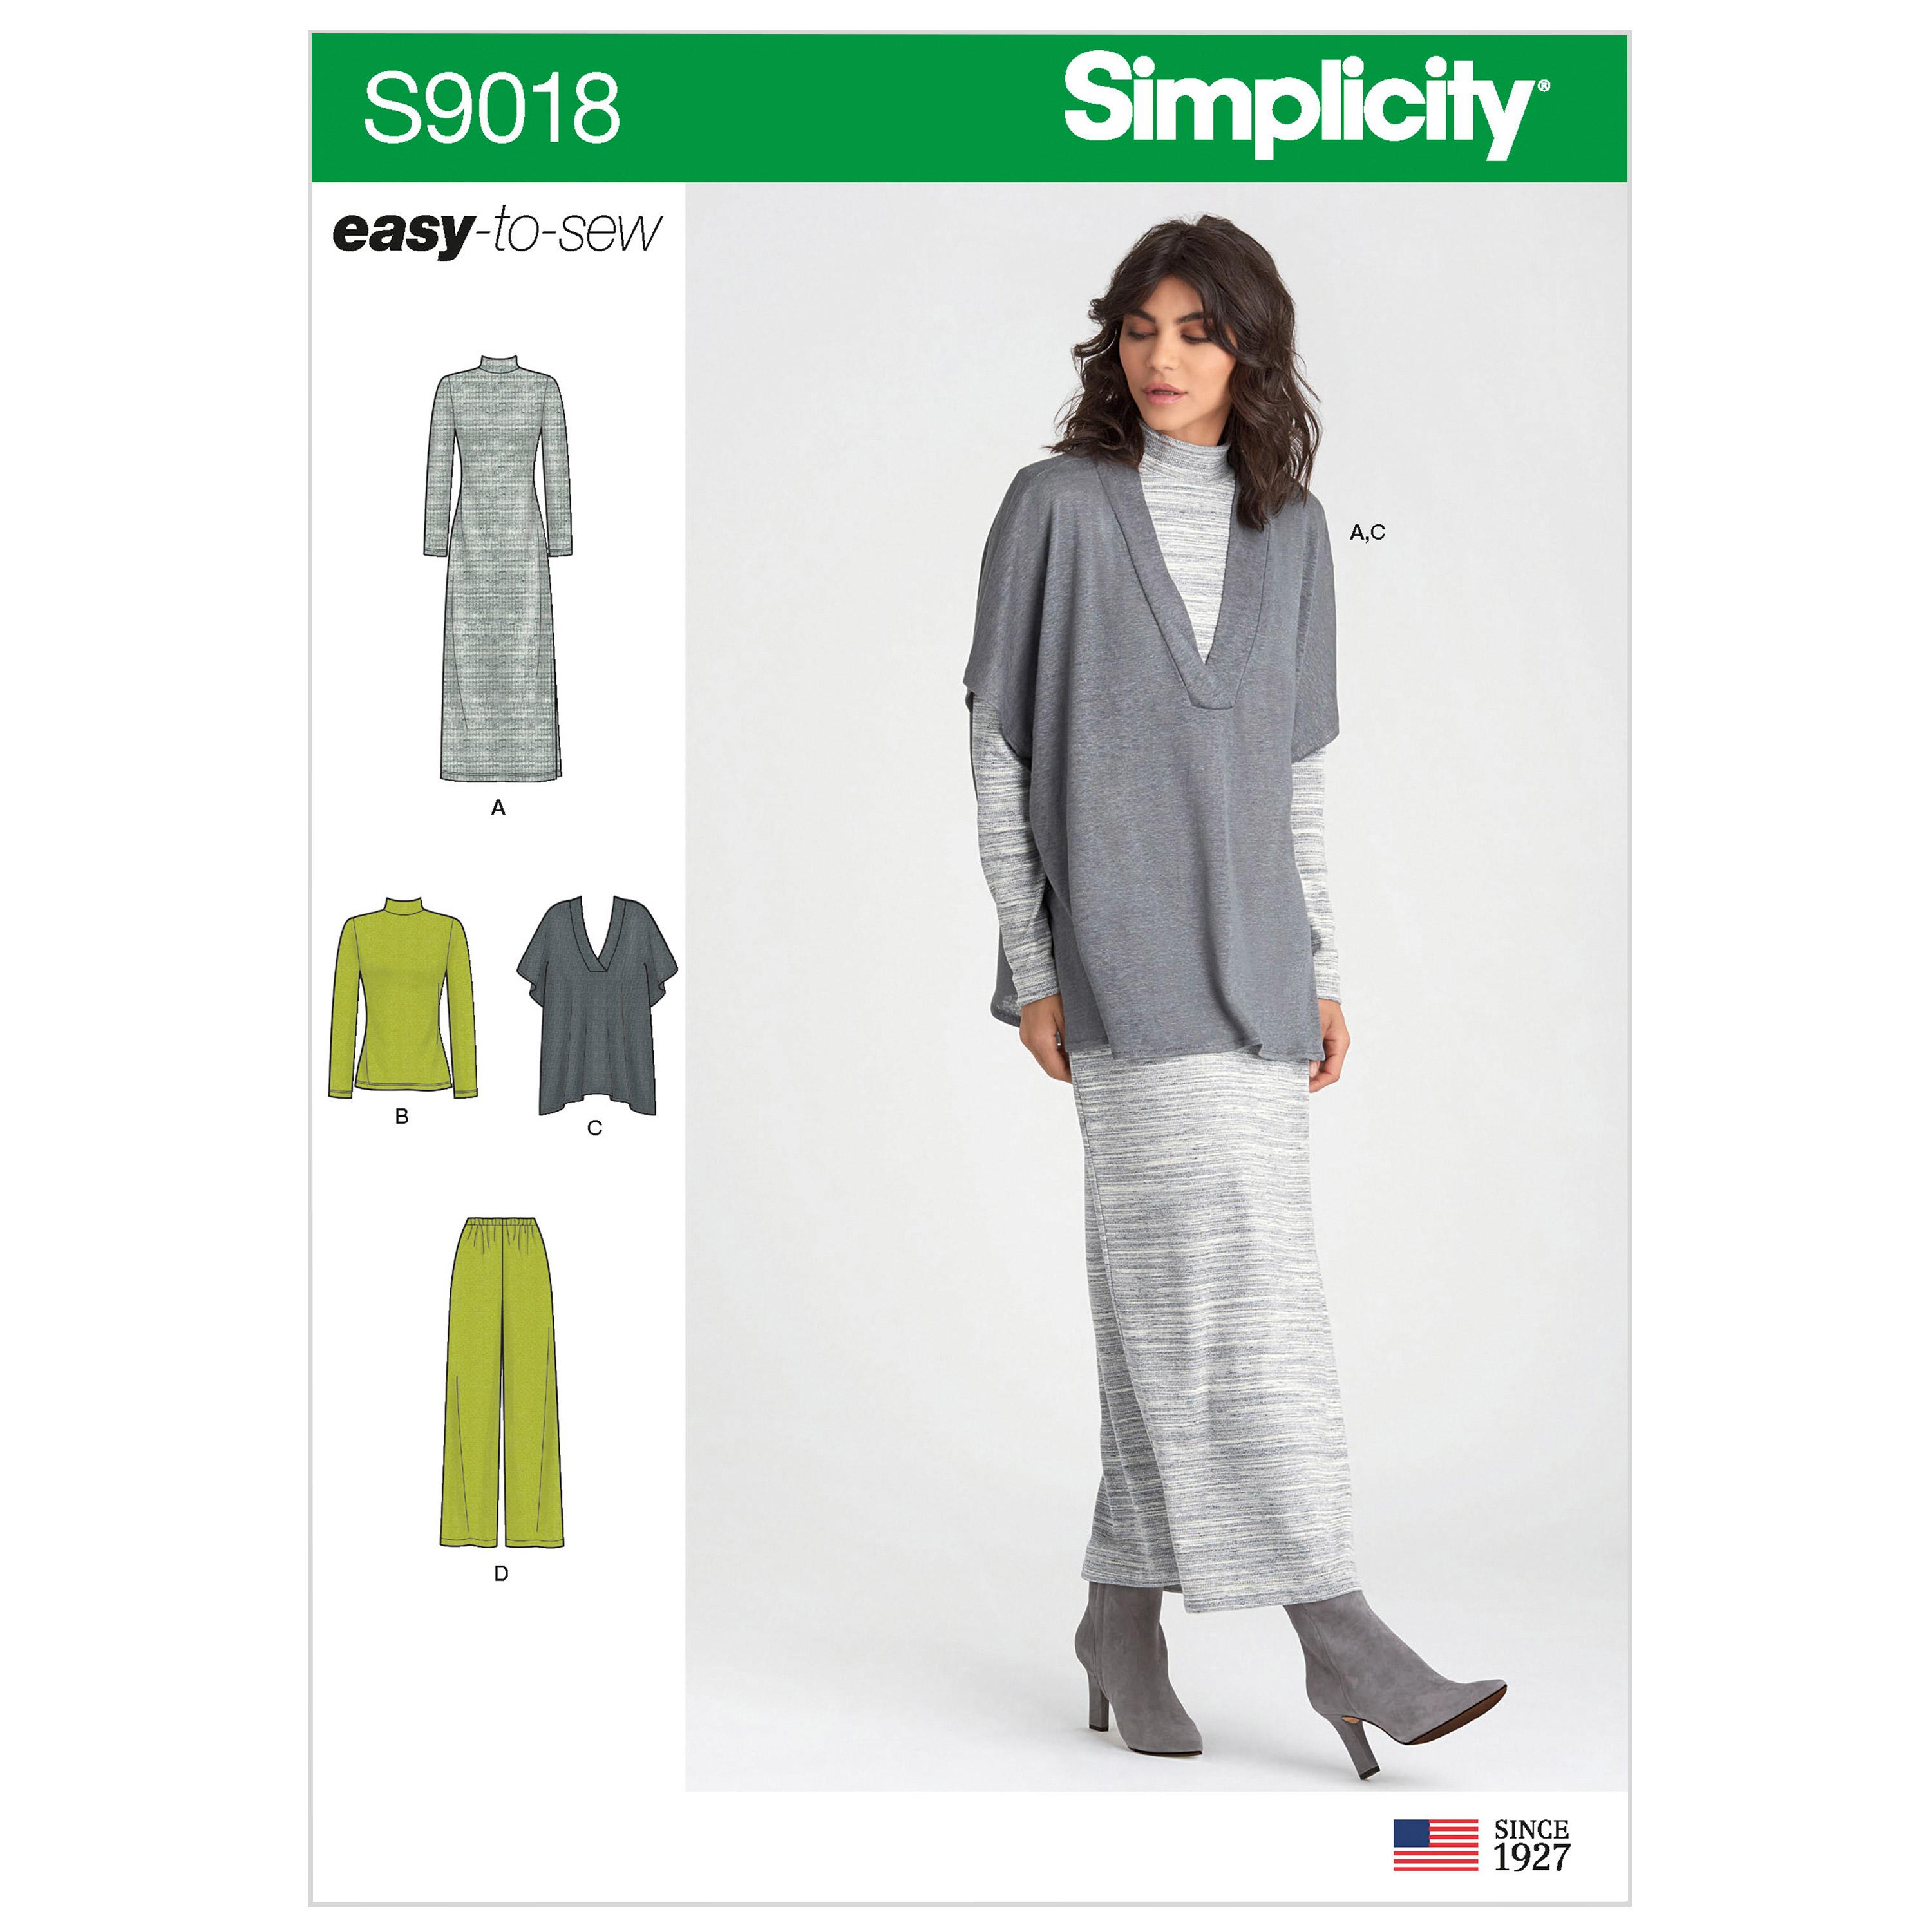 Simplicity S9018 Misses' Pants, Knit Vest, Dress or Top